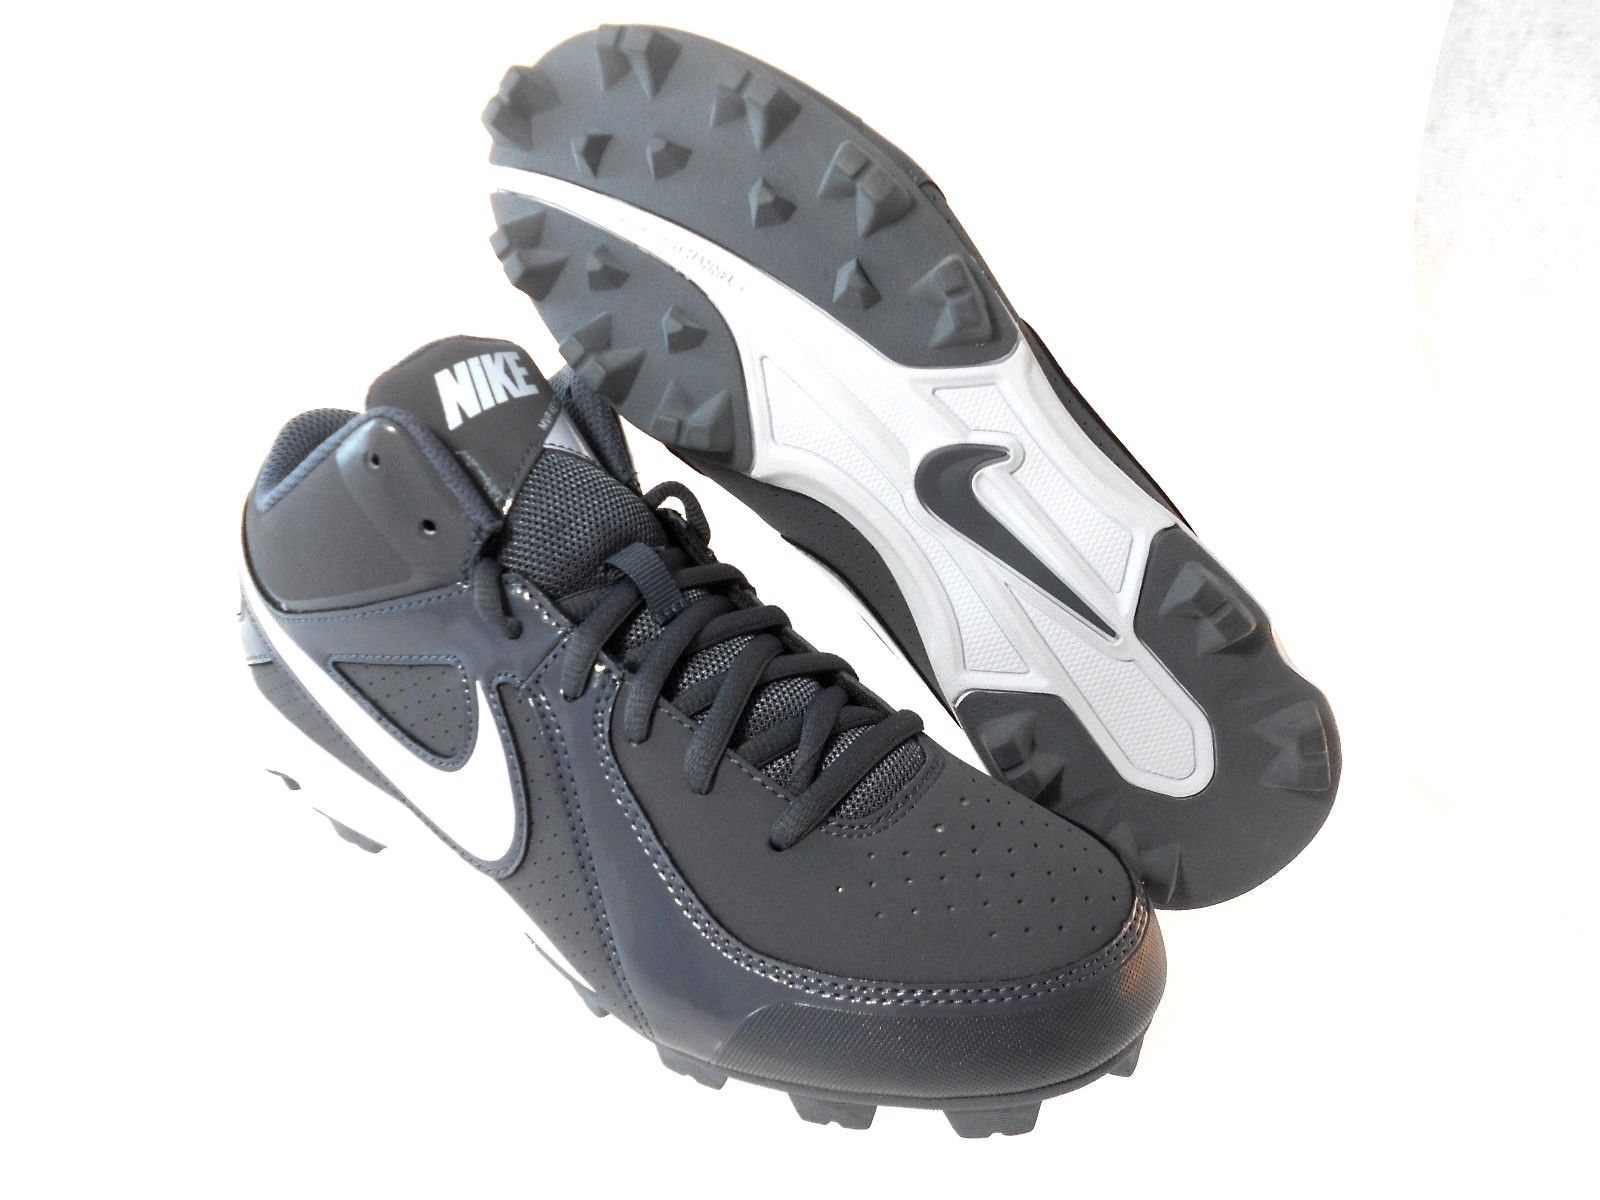 hot sale online c7509 8ca26 Nike Mvp Keystone 3 4MID Le Men s Baseball and 50 similar items. S l1600